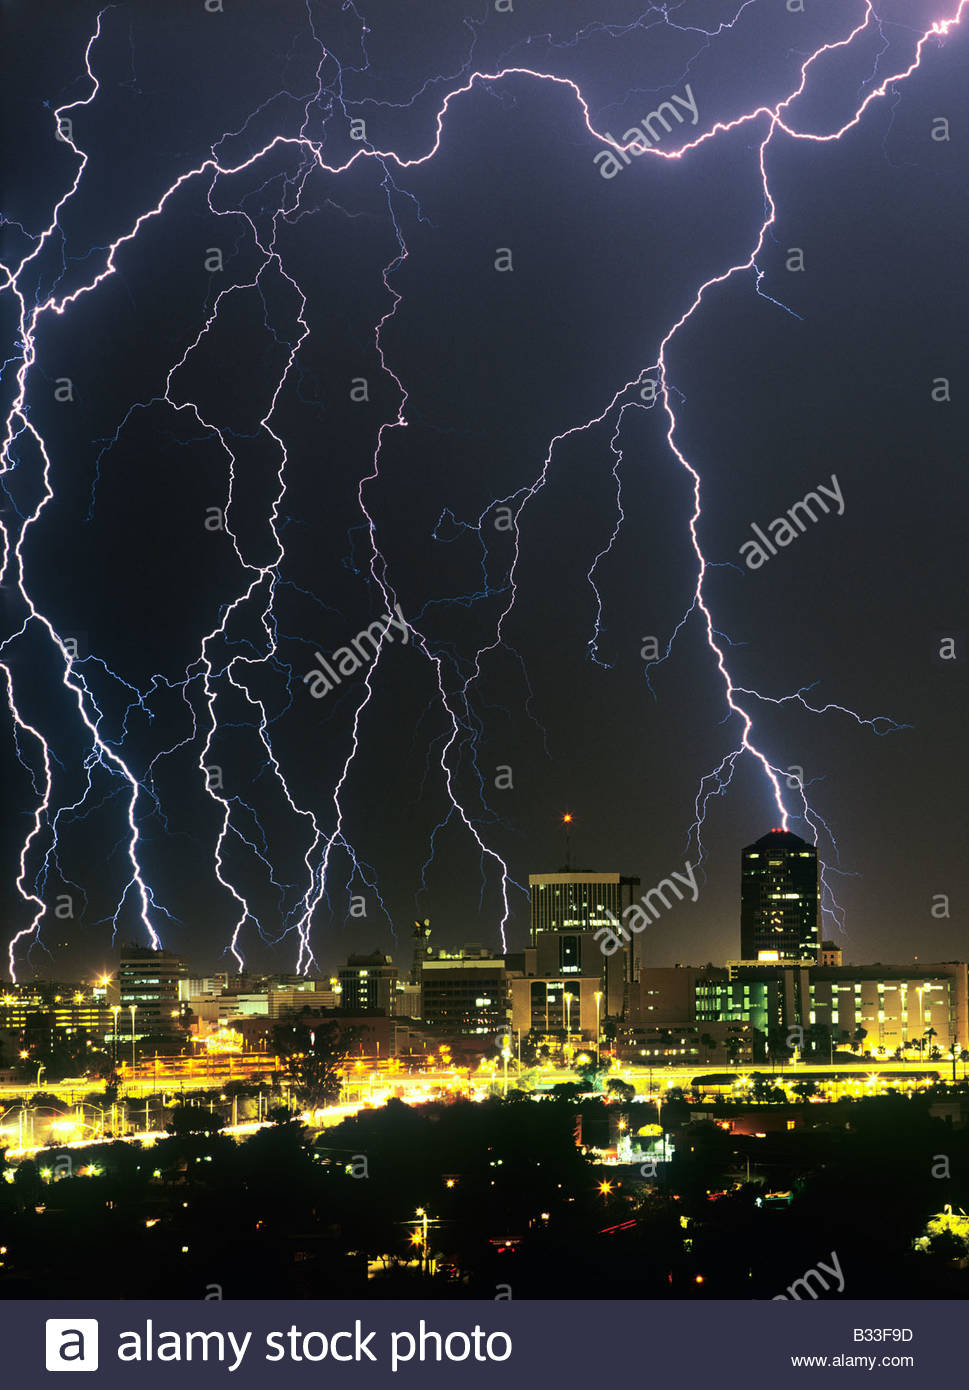 lightning storm thunderstorm over downtown tucson arizona usa with